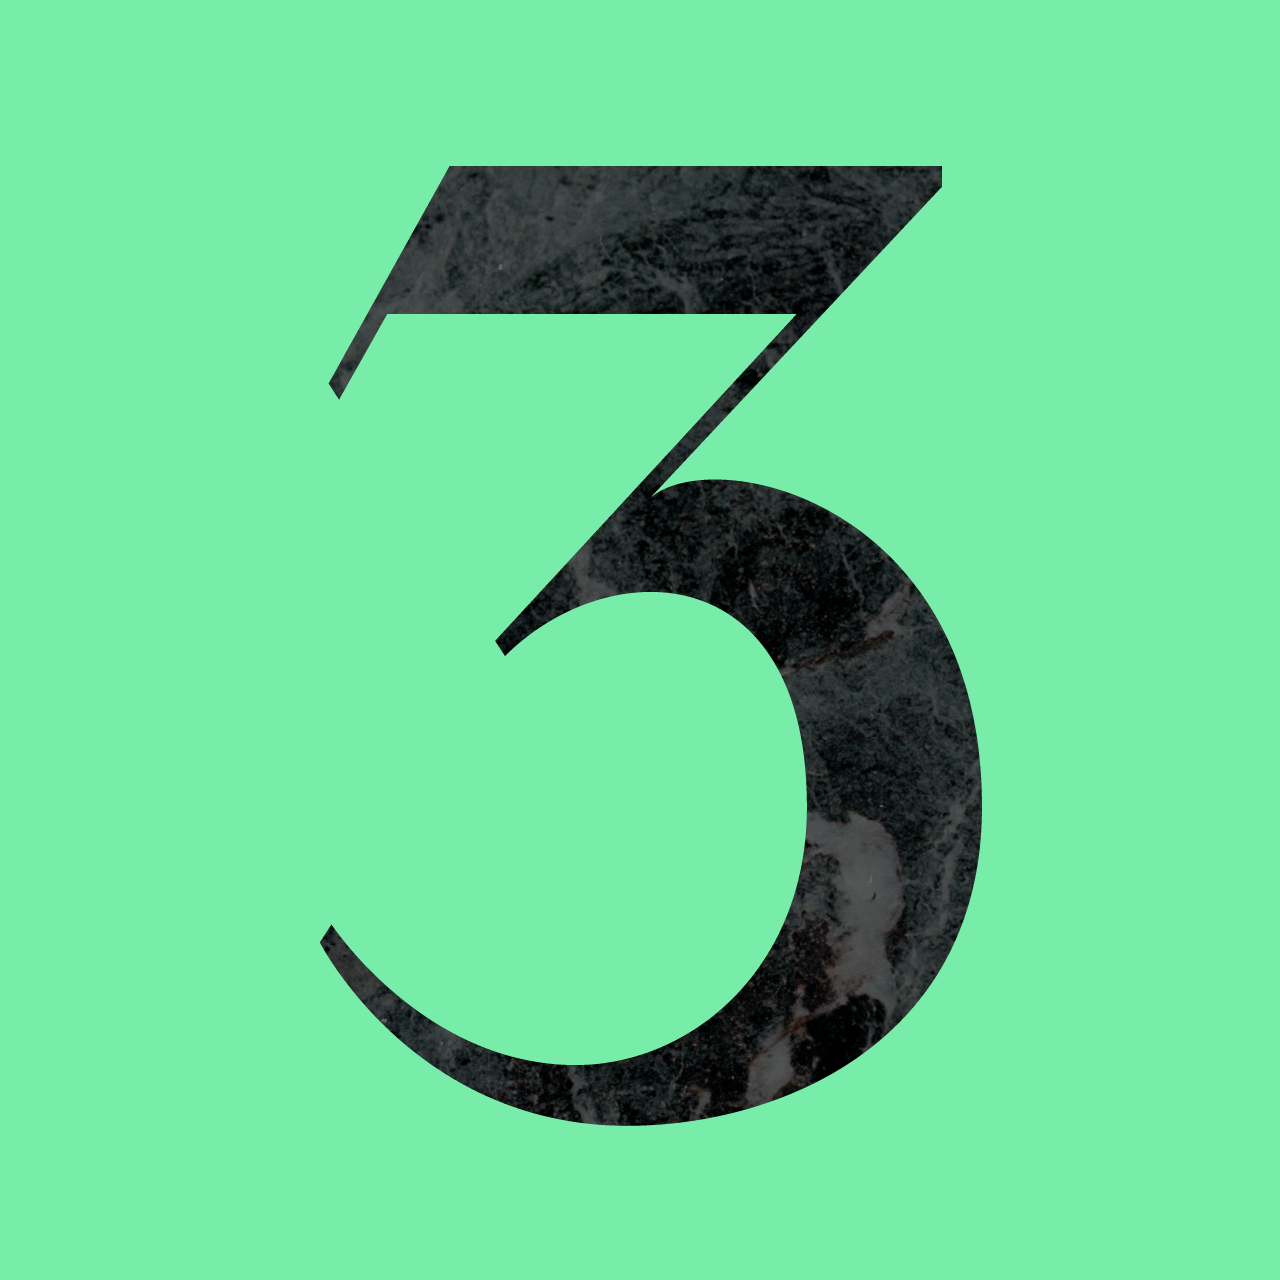 My 3 submission for 36 Days of Type